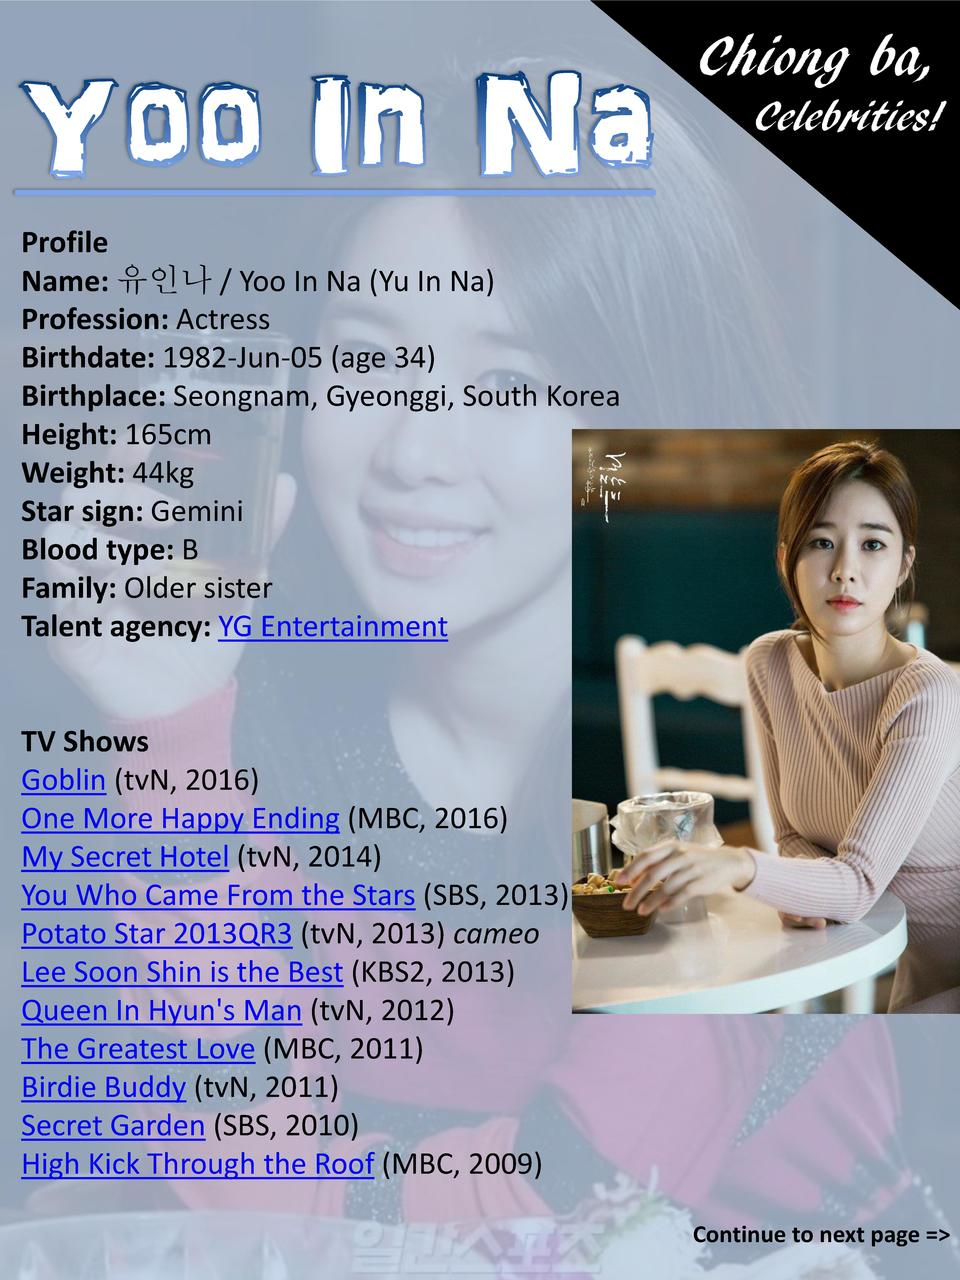 Chiong ba, Celebrities  Profile Name              Yoo In Na  Yu In Na  Profession  Actress Birthdate  1982-Jun-05  age 34 ...